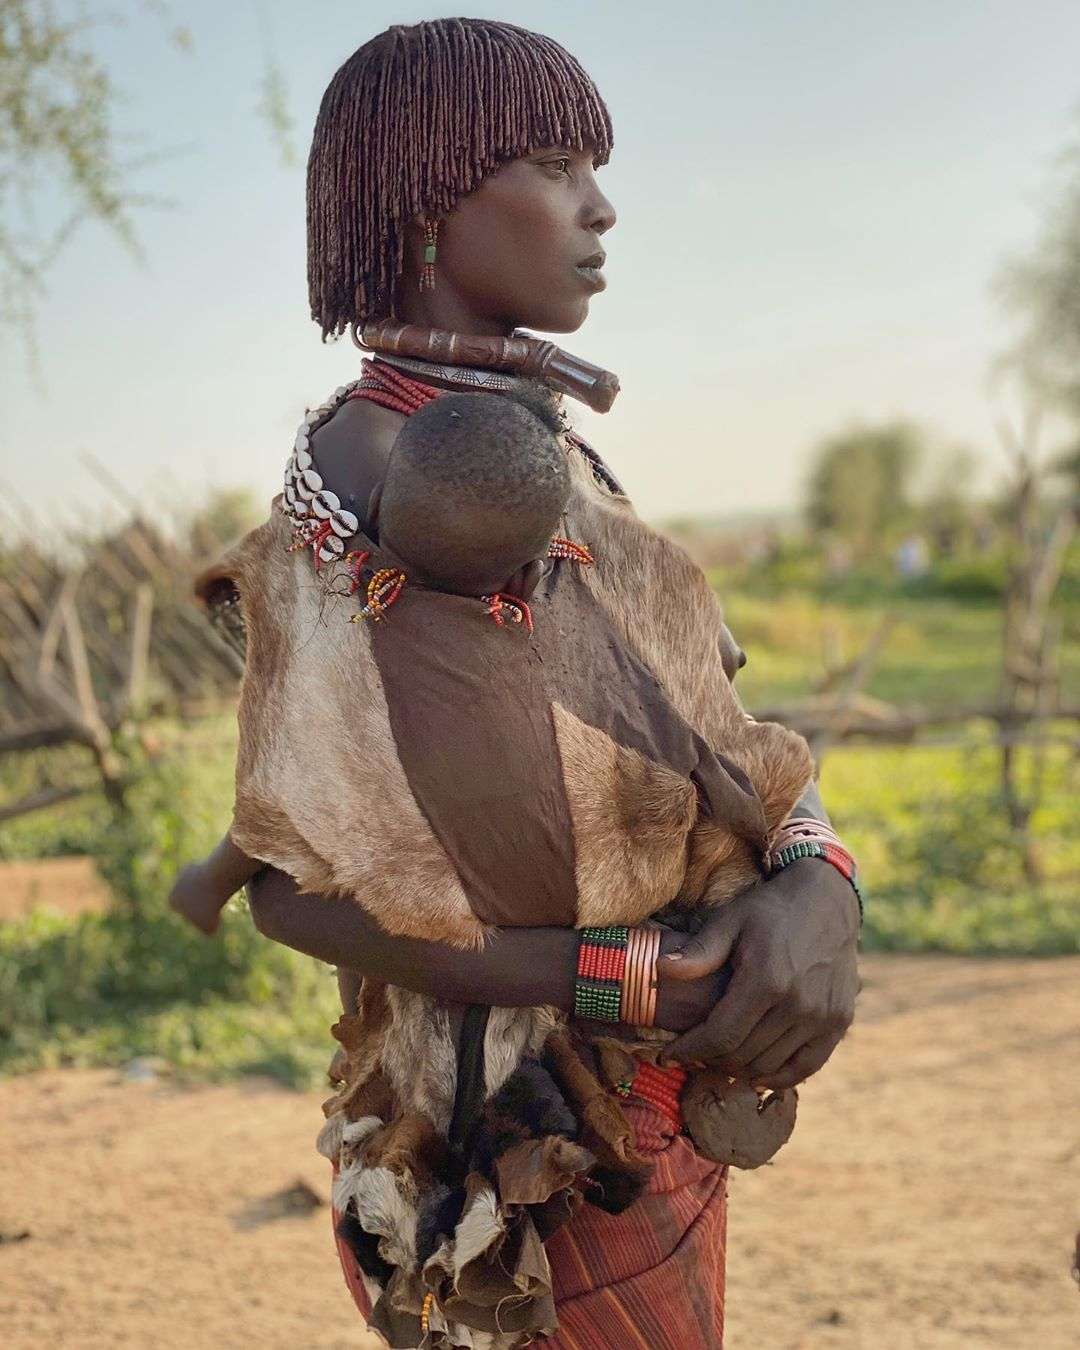 Ethiopia Travel Guide - Mother and Baby